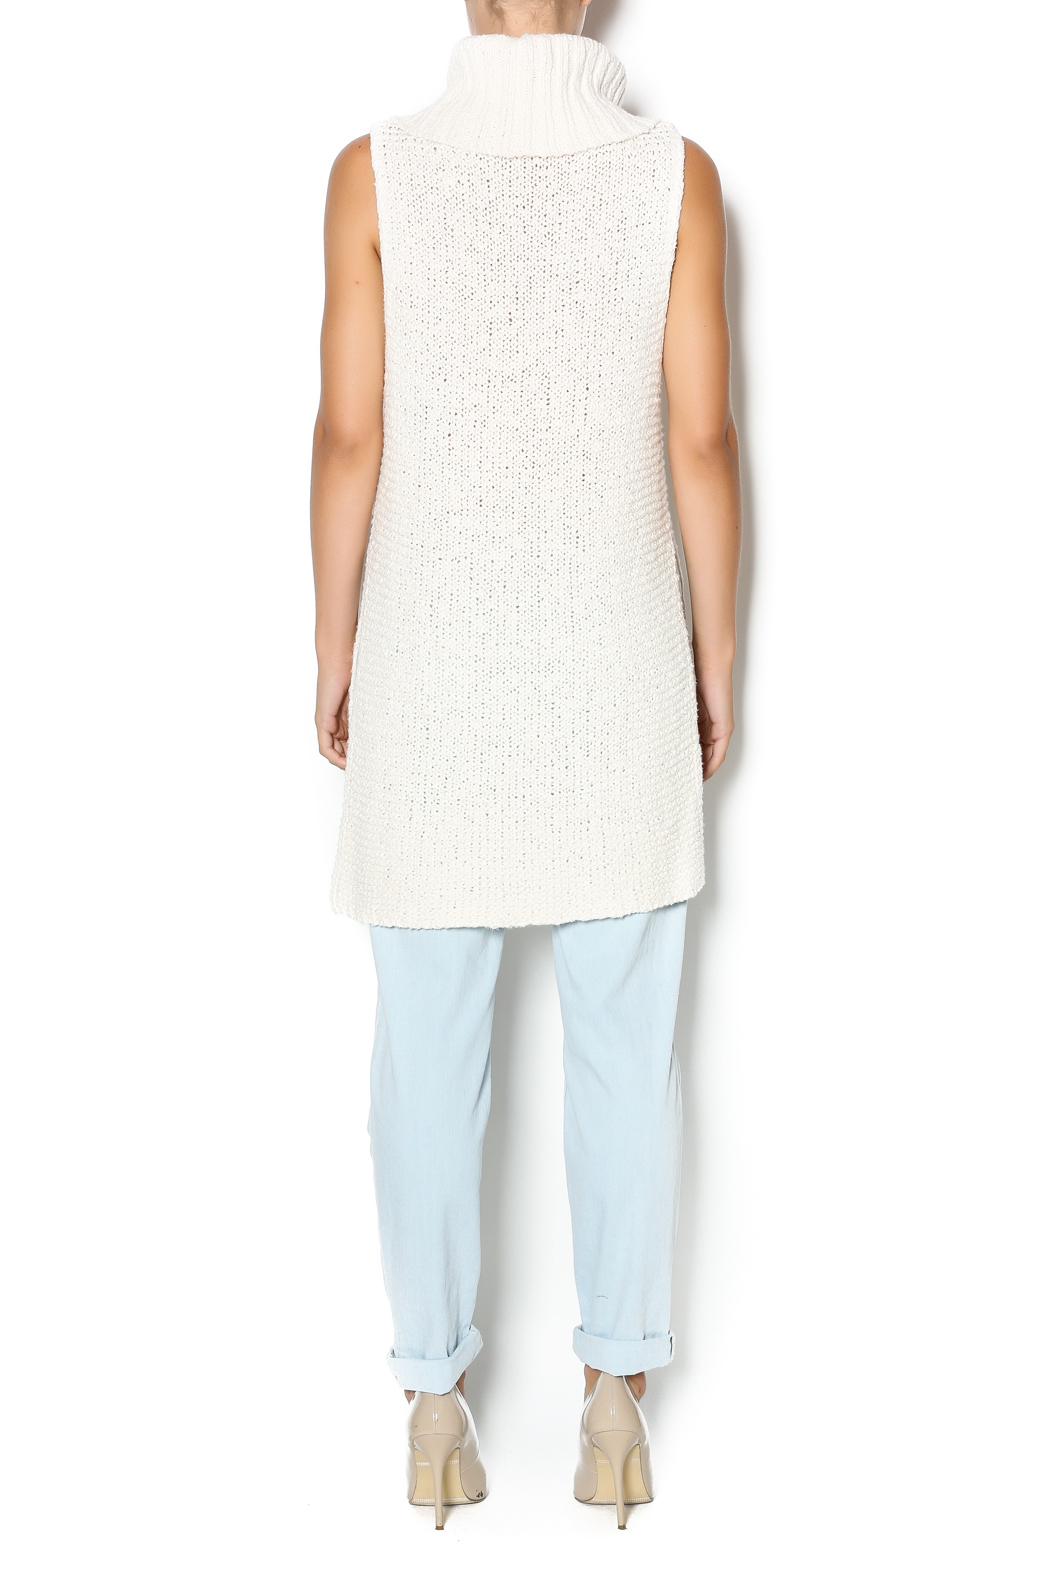 Free People Ivory Comb Turtleneck - Side Cropped Image